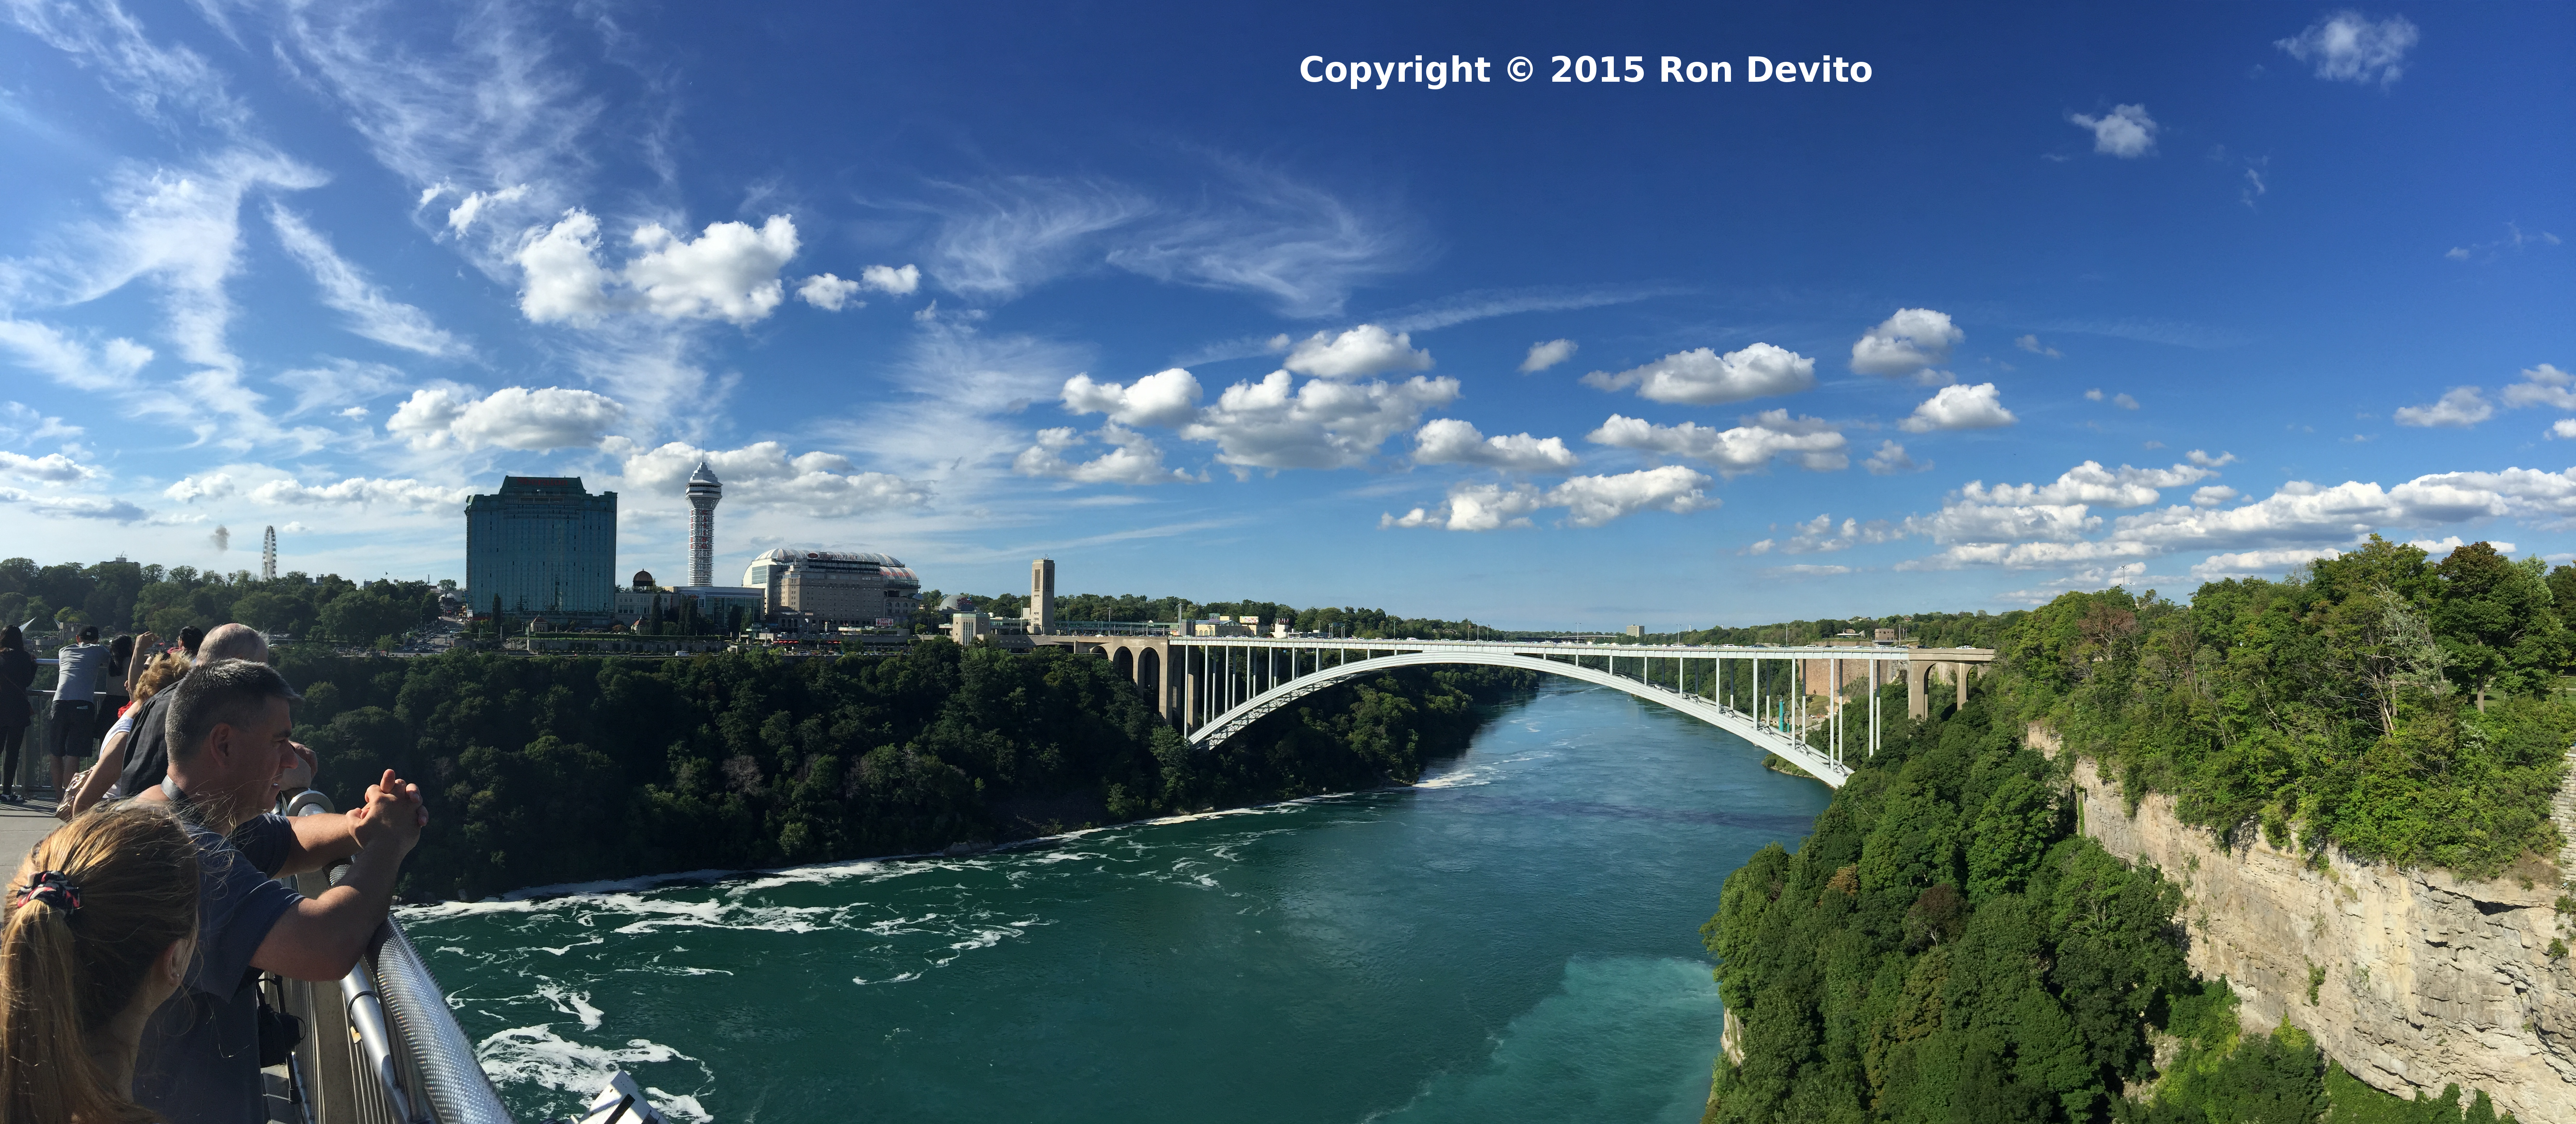 Pano View from Niagara Falls State Park Observation Tower looking toward the Rainbow Bridge into Canada.